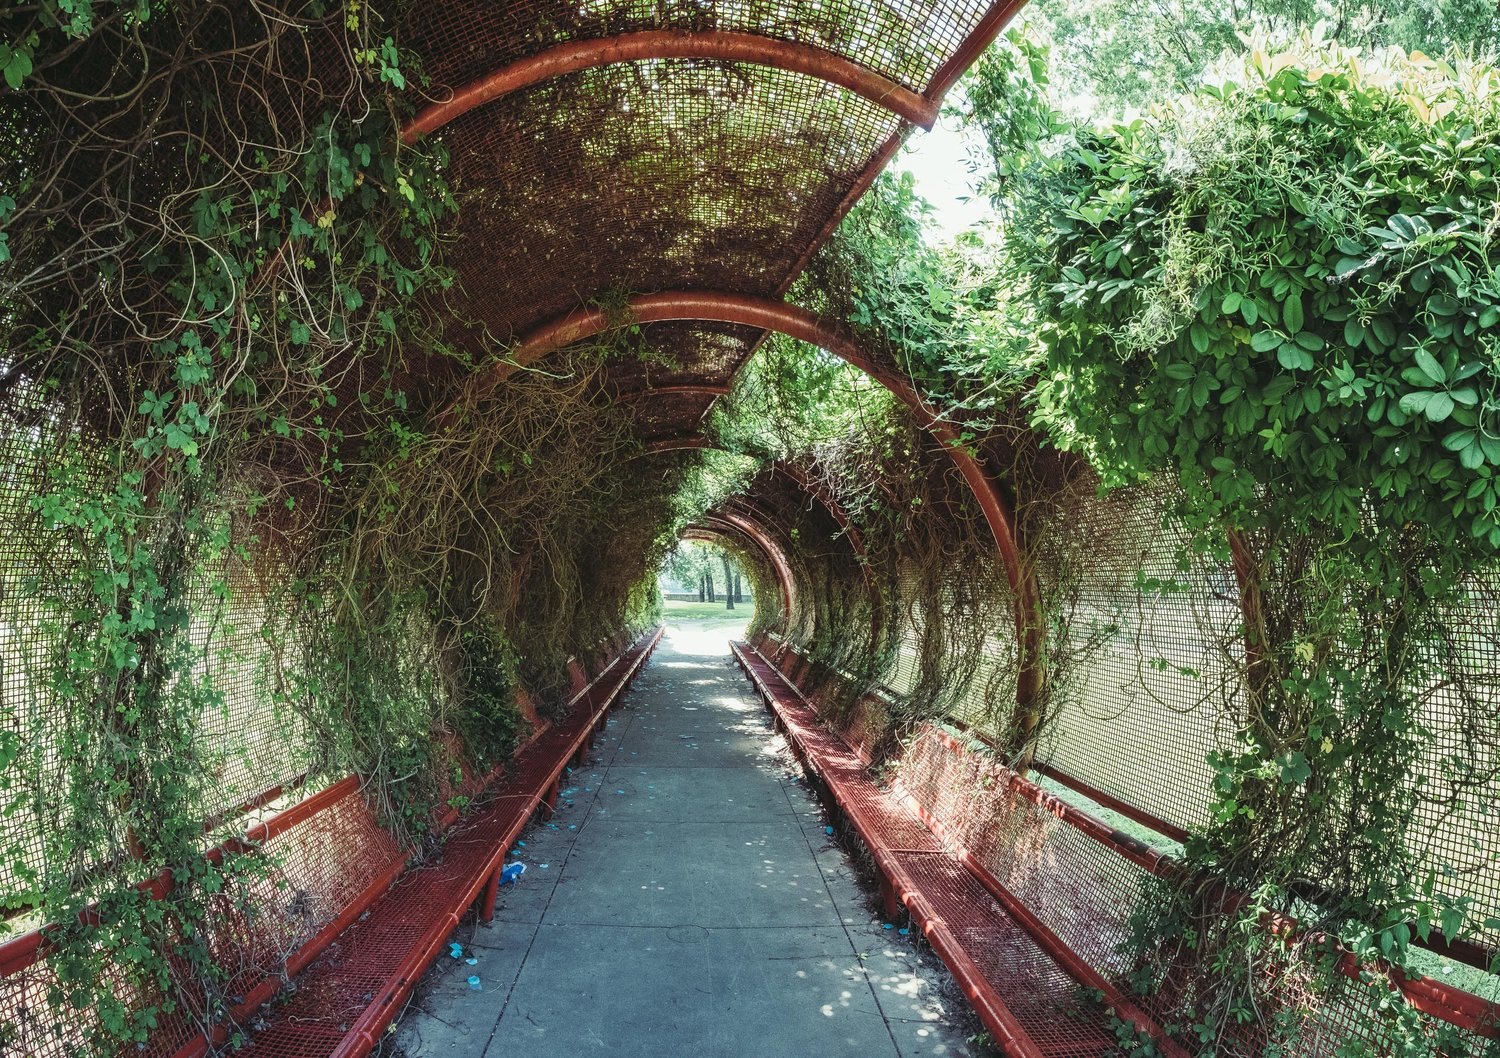 A park tunnel, overtaken by nature in Columbus IN.